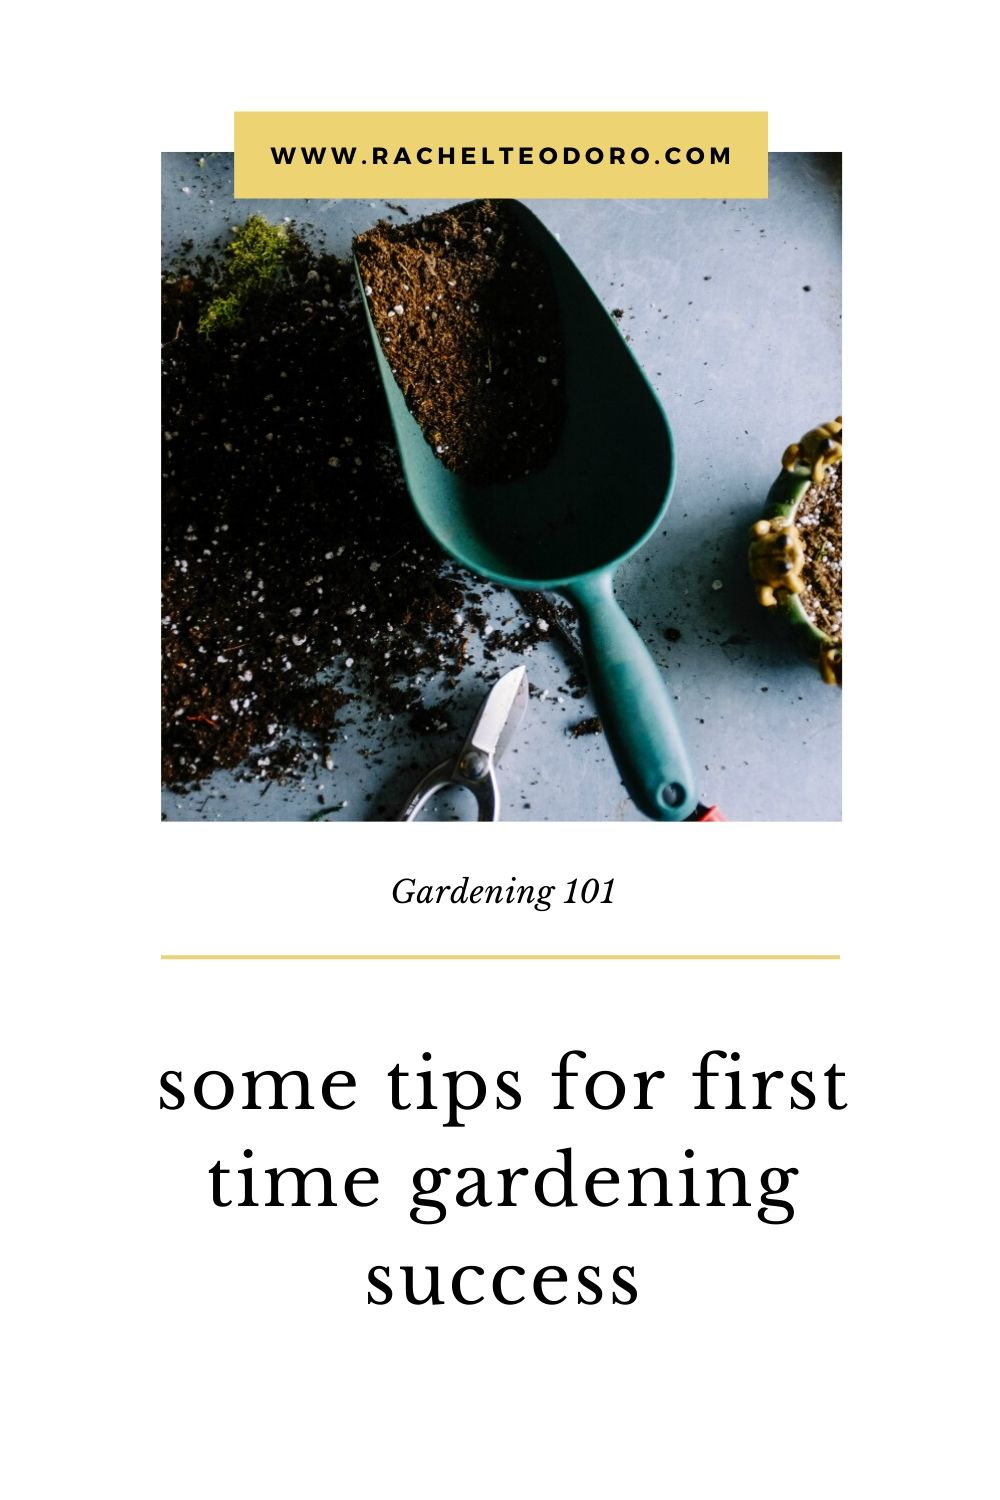 Gardening Ideas for When you are Stuck at Home